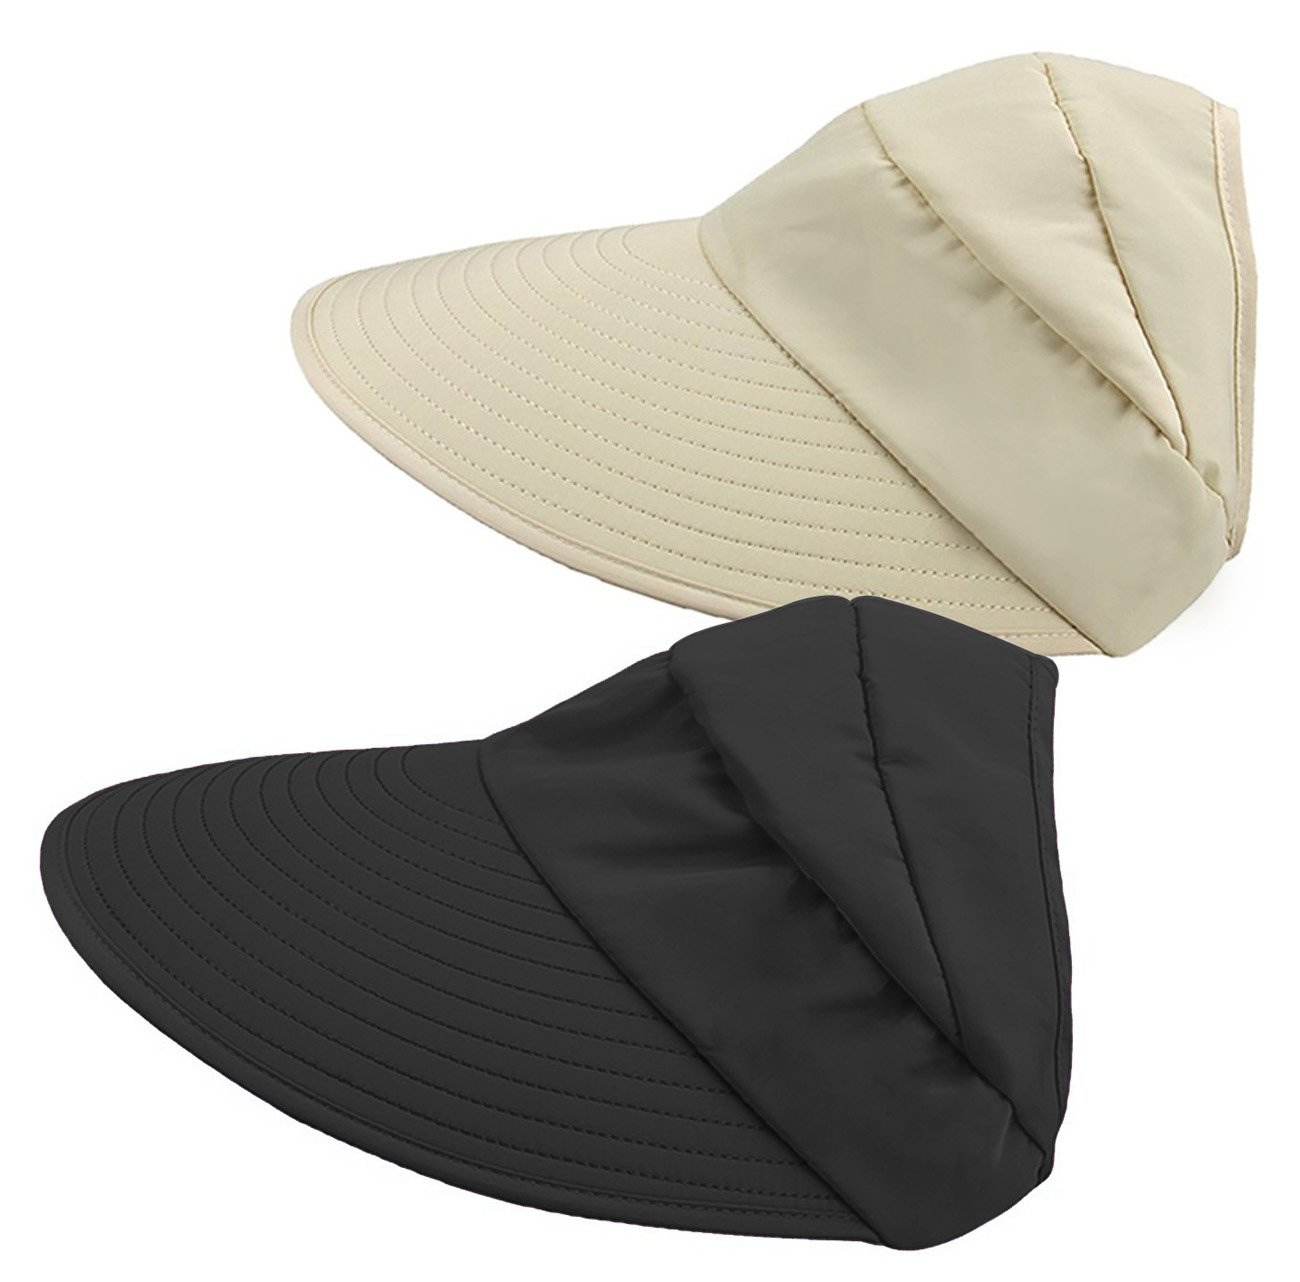 a0f0a06c23f53 HINDAWI Sun Hats Women Wide Brim UV Protection Sun Hat Summer Beach  Packable Visor product image